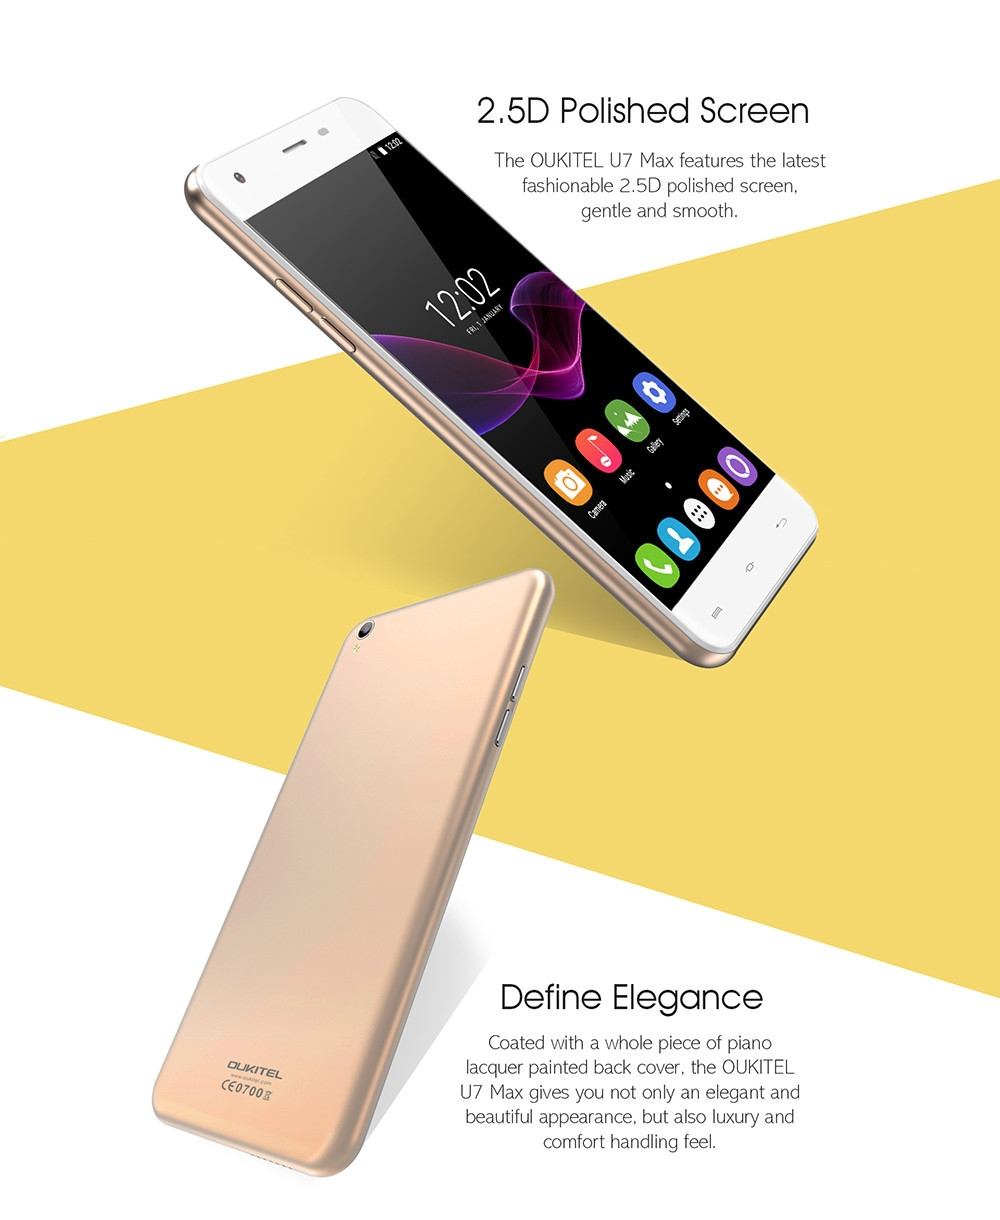 Oukitel U7 Max 3G Phablet 5.5 inch Android 6.0 MTK6580 Quad Core 1.3GHz 1GB RAM 8GB ROM 8.0MP Rear Camera 2500mAh Battery